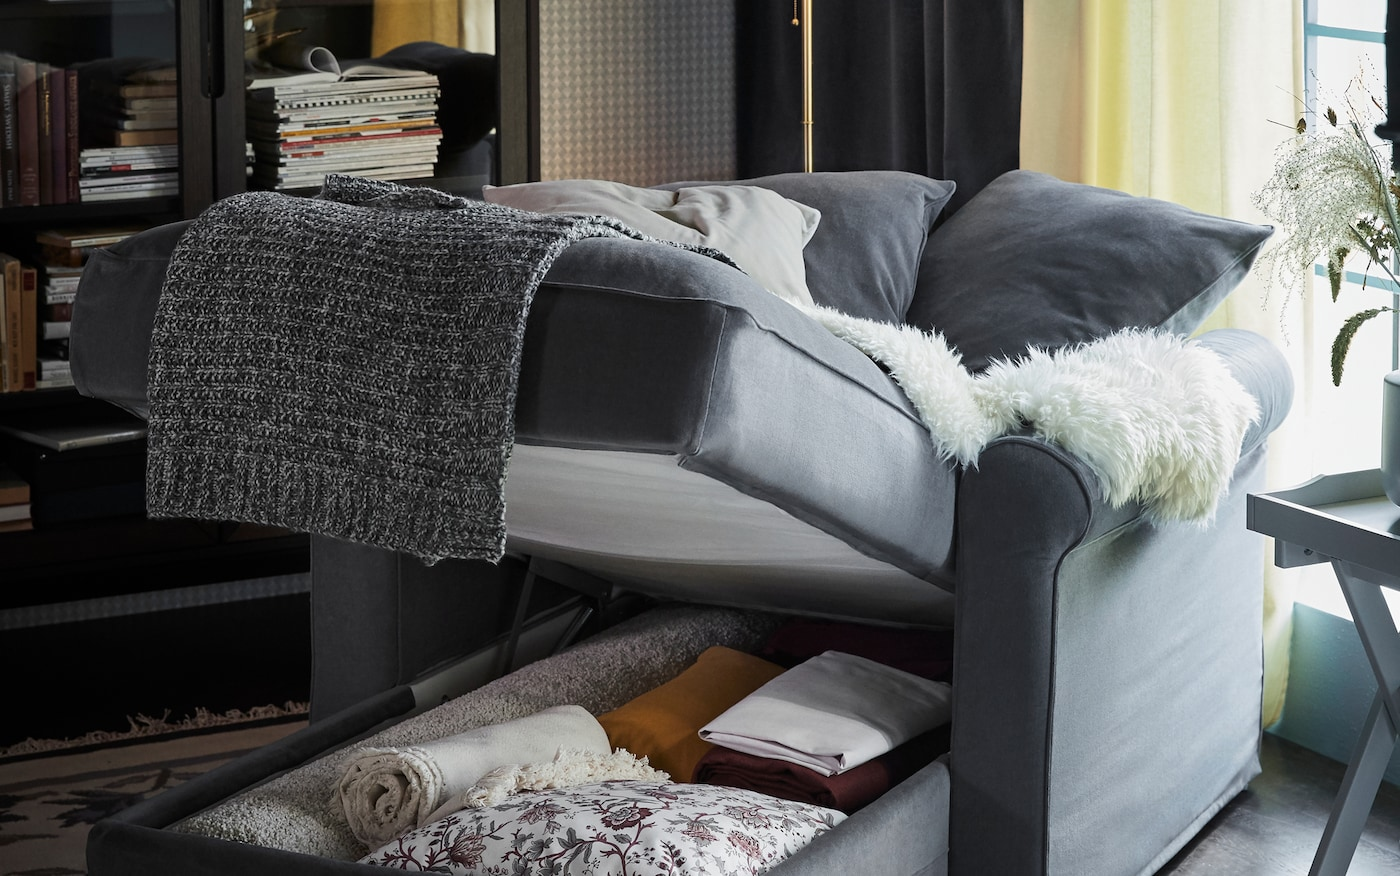 A grey GRÖNLID chaise longue with the built in storage under the seat opened to reveal extra throws and cushions.